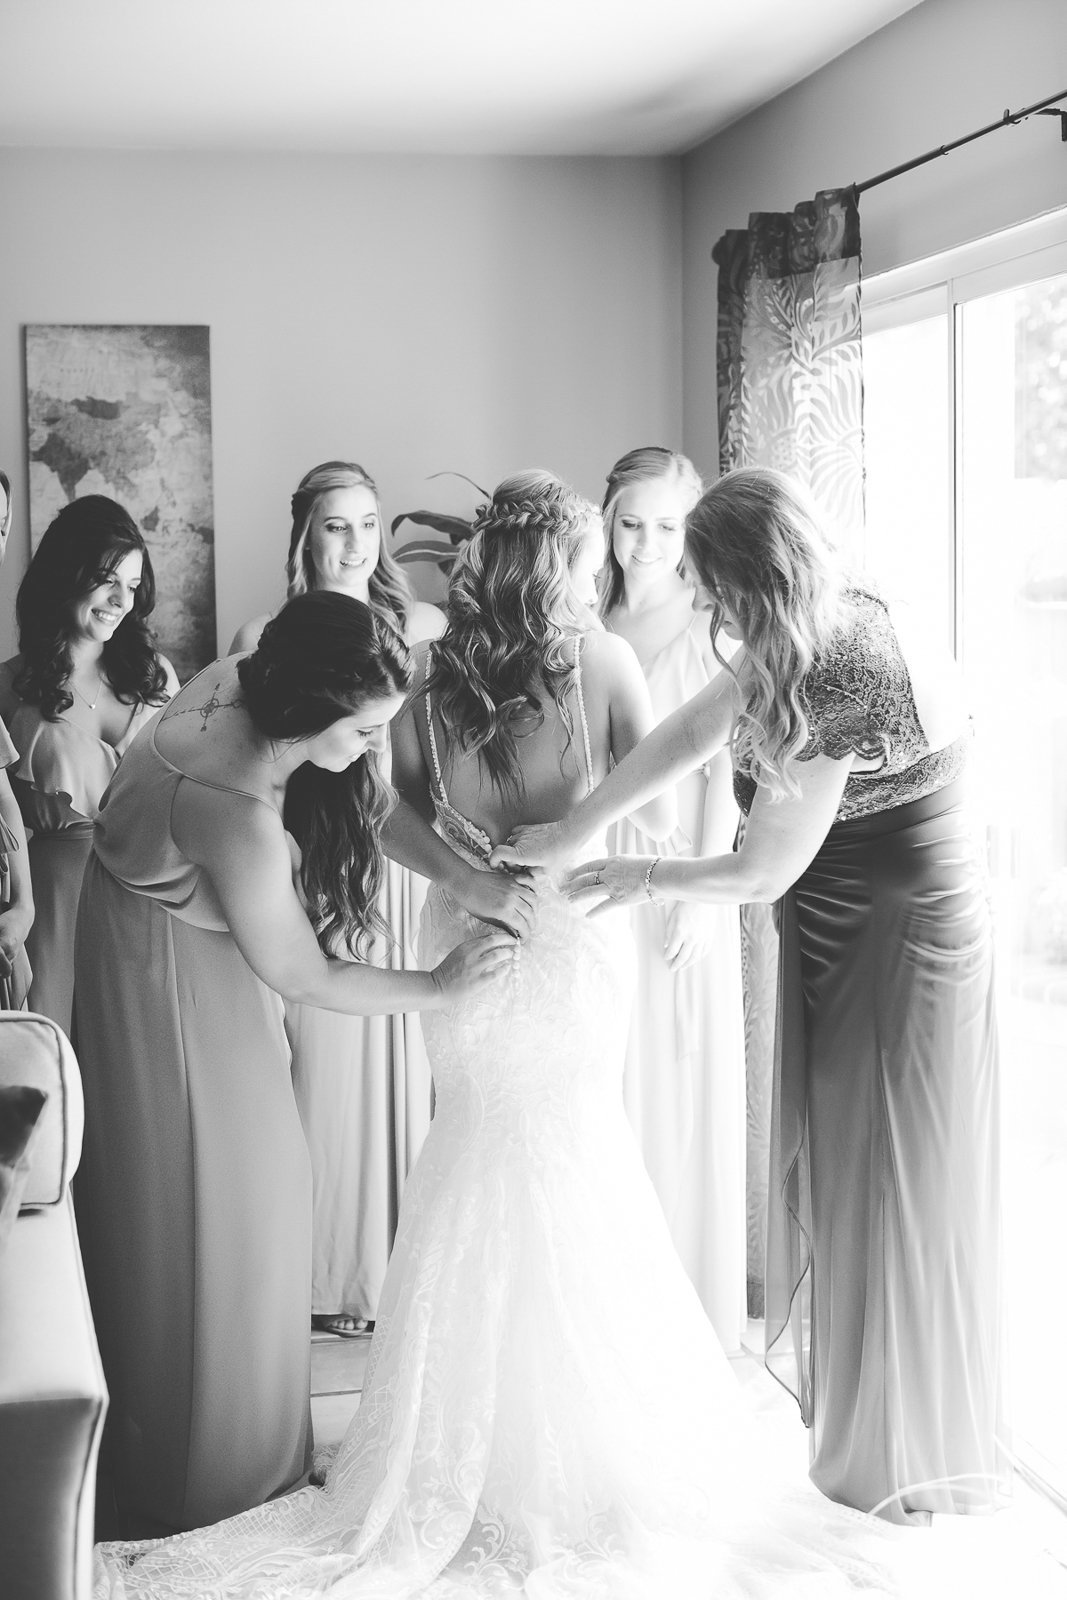 Bride and Groom Wedding Photo Ideas Theresa Bridget Photography Photo-25